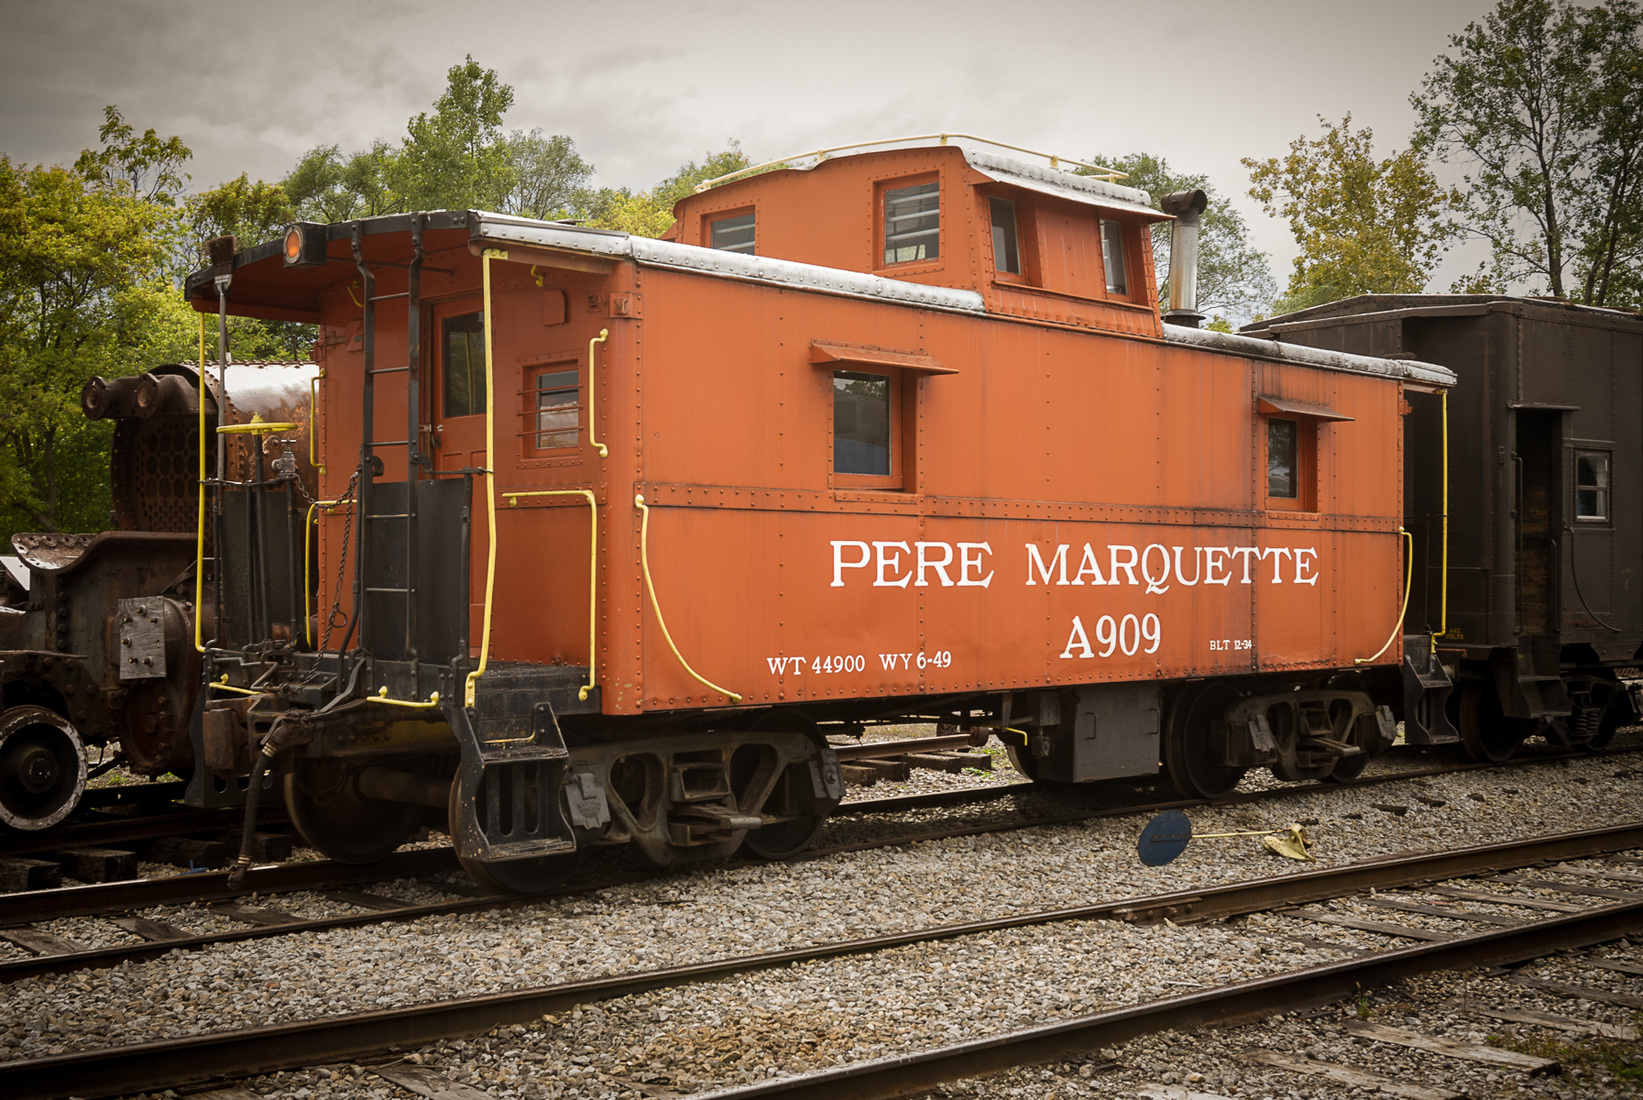 Iron, Steel, and Steam Pere Marquett A909